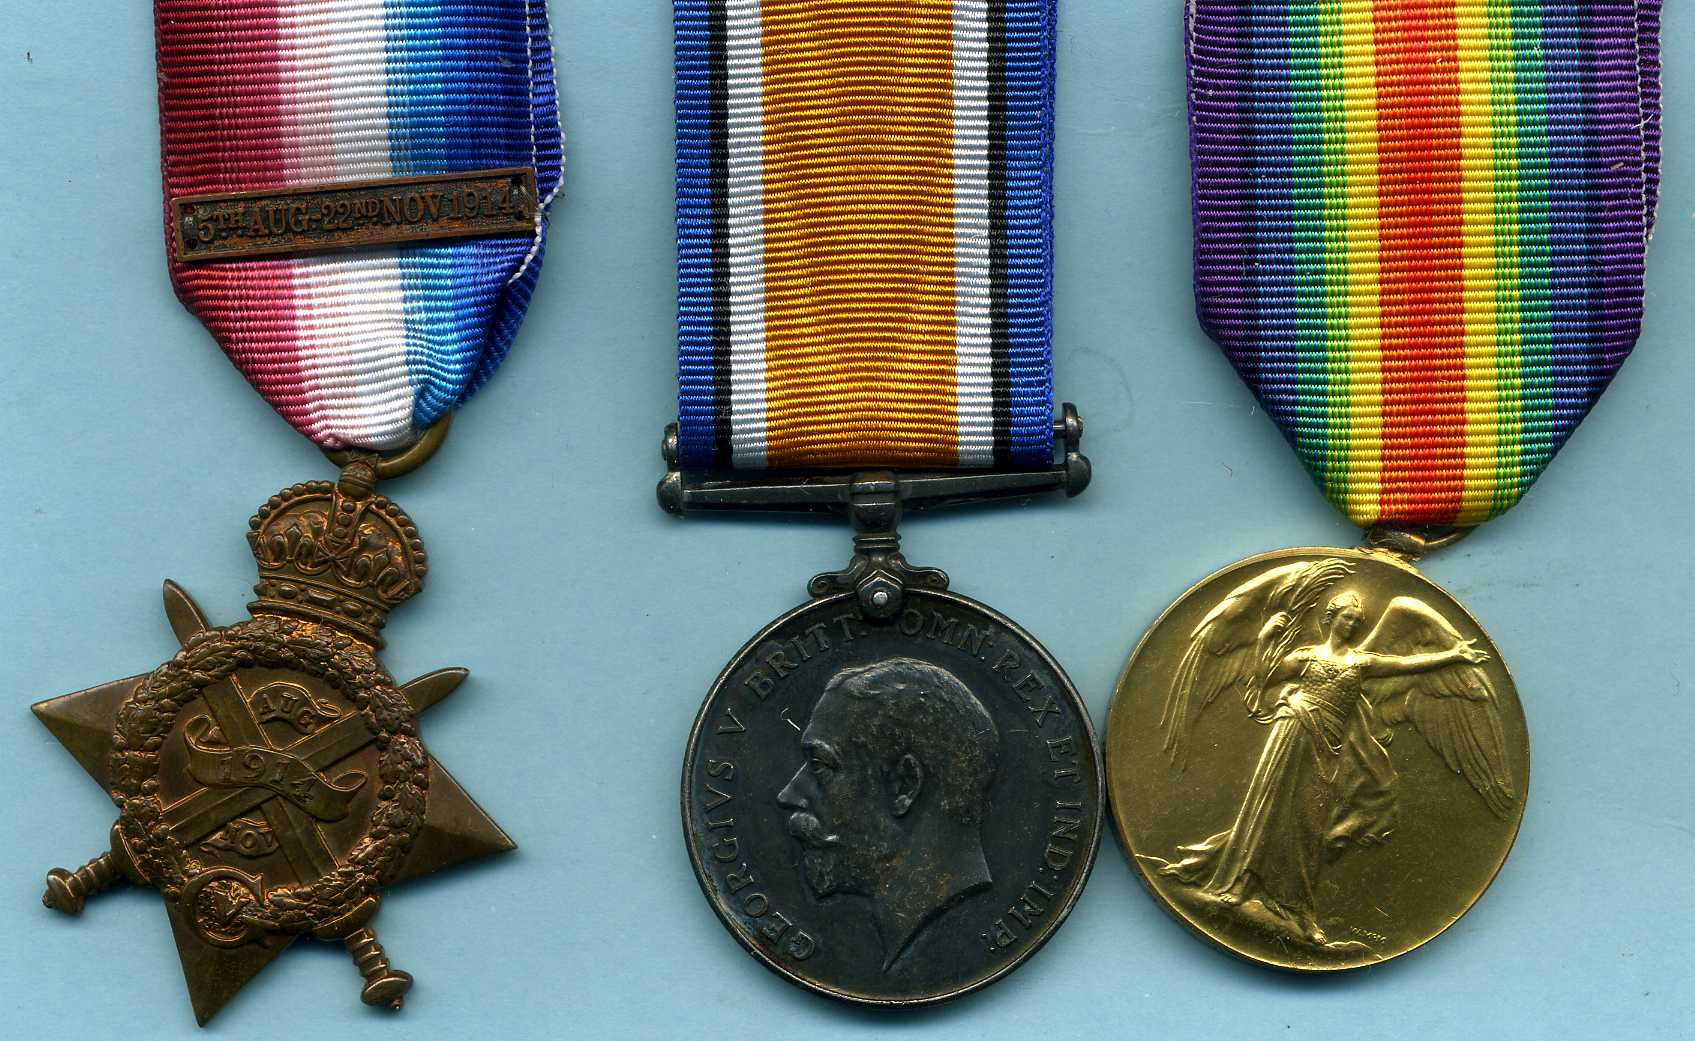 Private Baker was entitled to the above three medals; 1914 Star, British War Medal and the British Victory Medal. The whereabouts of Private Baker's actual medals is currently unknown.